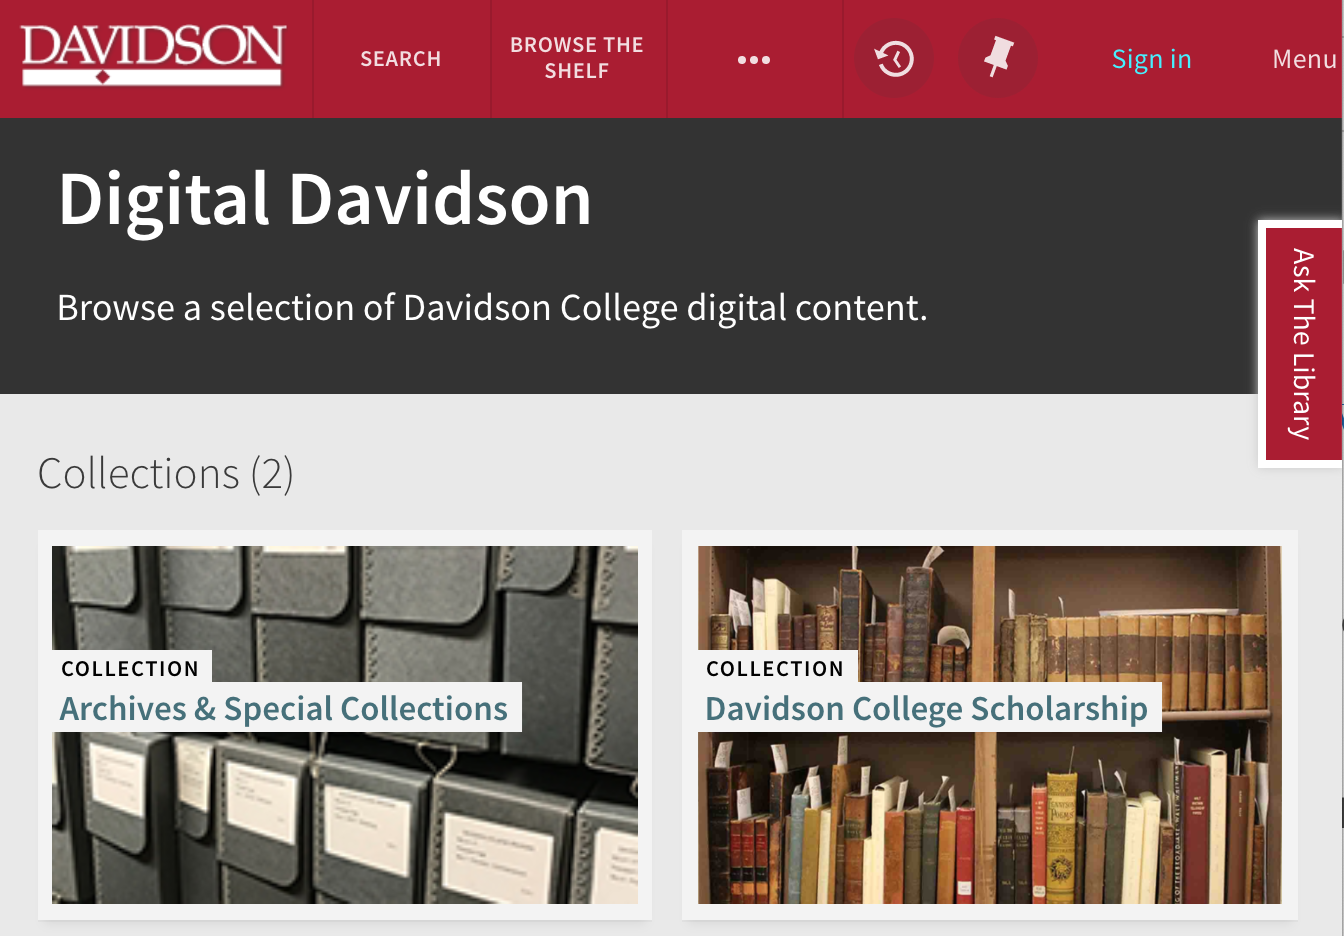 Screenshot of 'Digital Davidson' webpage